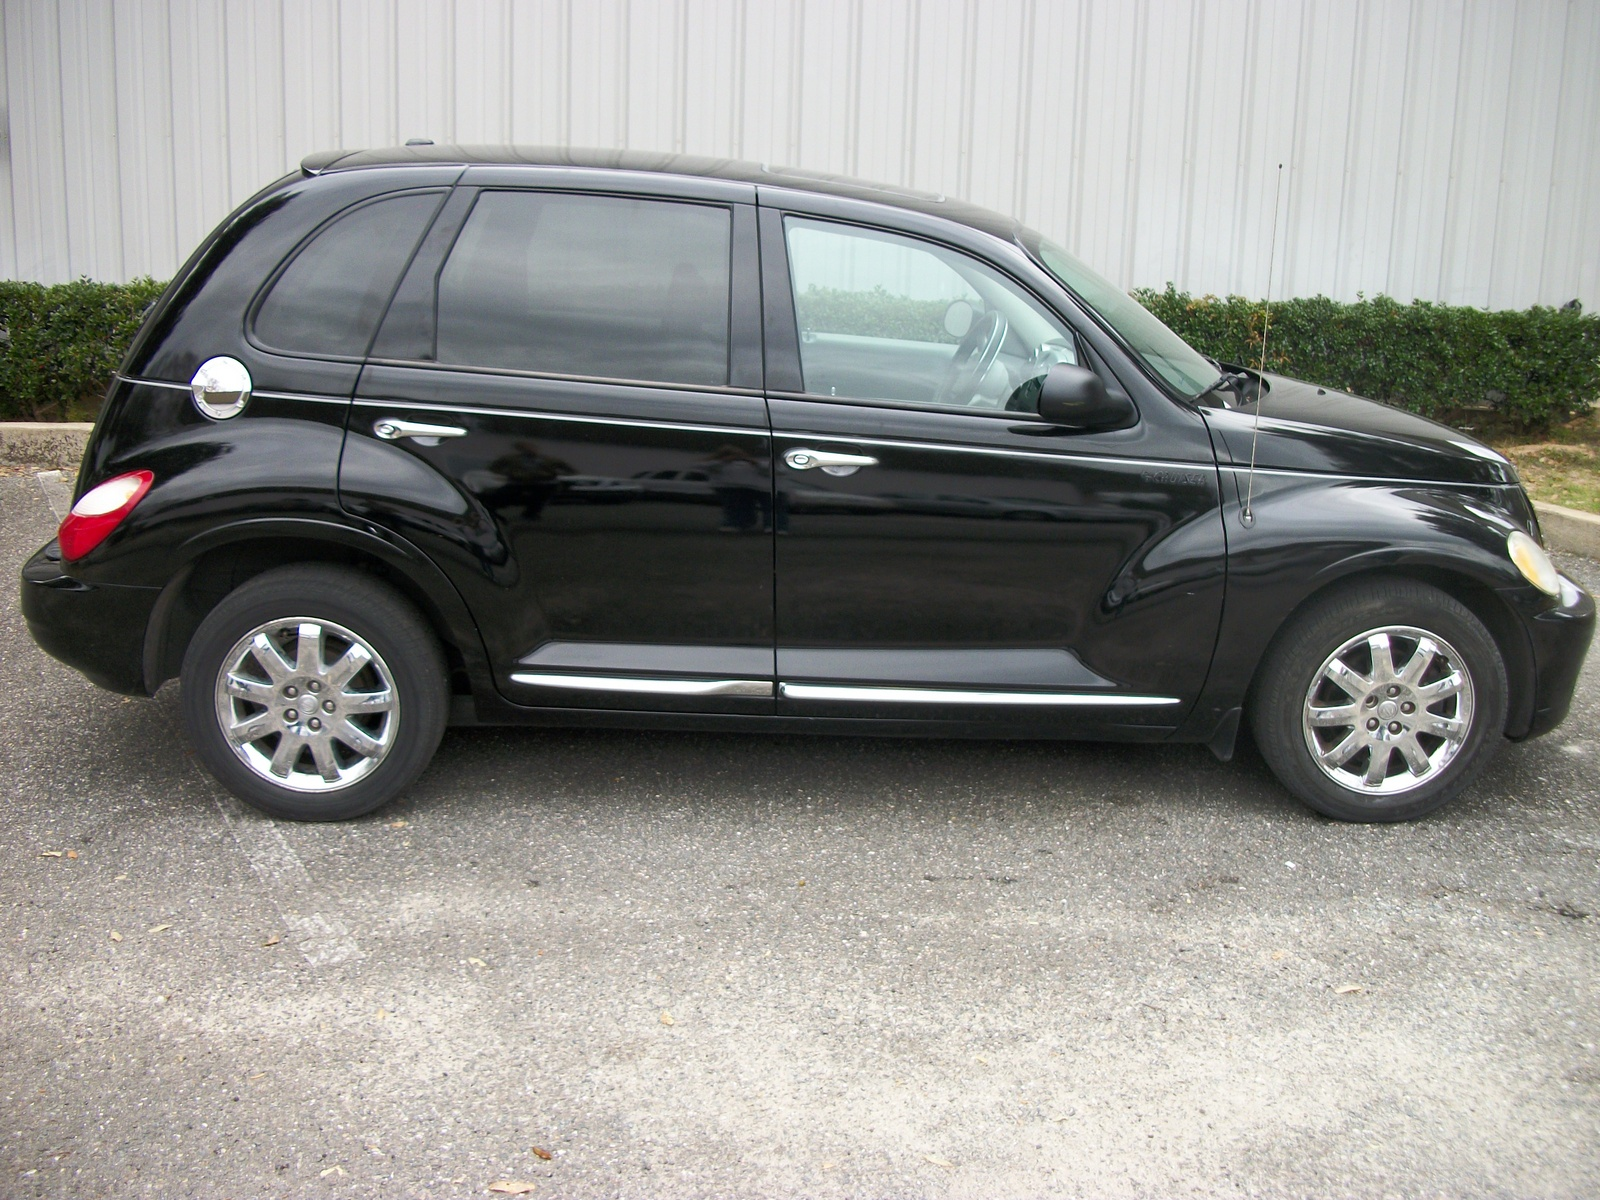 2018 Chrysler Pt Cruiser Car Photos Catalog 2018